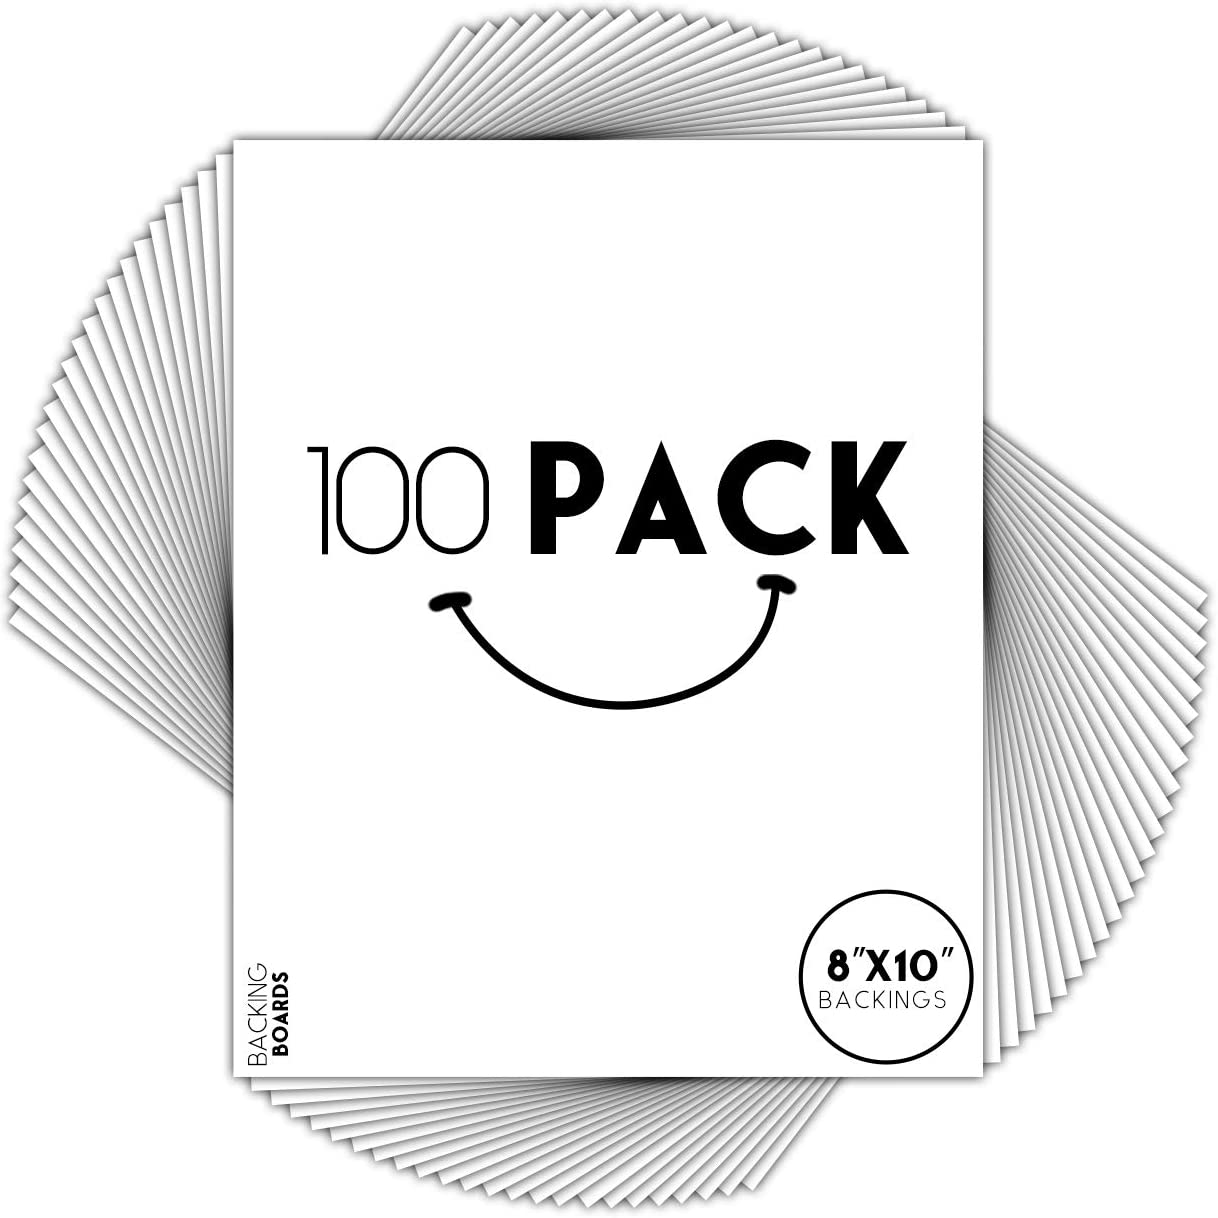 Golden State Art, Pack of 100, 8x10 White Backing Boards - Uncut, Acid Free, 4-Ply Thickness, Signature Friendly - Great for Photos, Pictures, Events, Frames, Prints